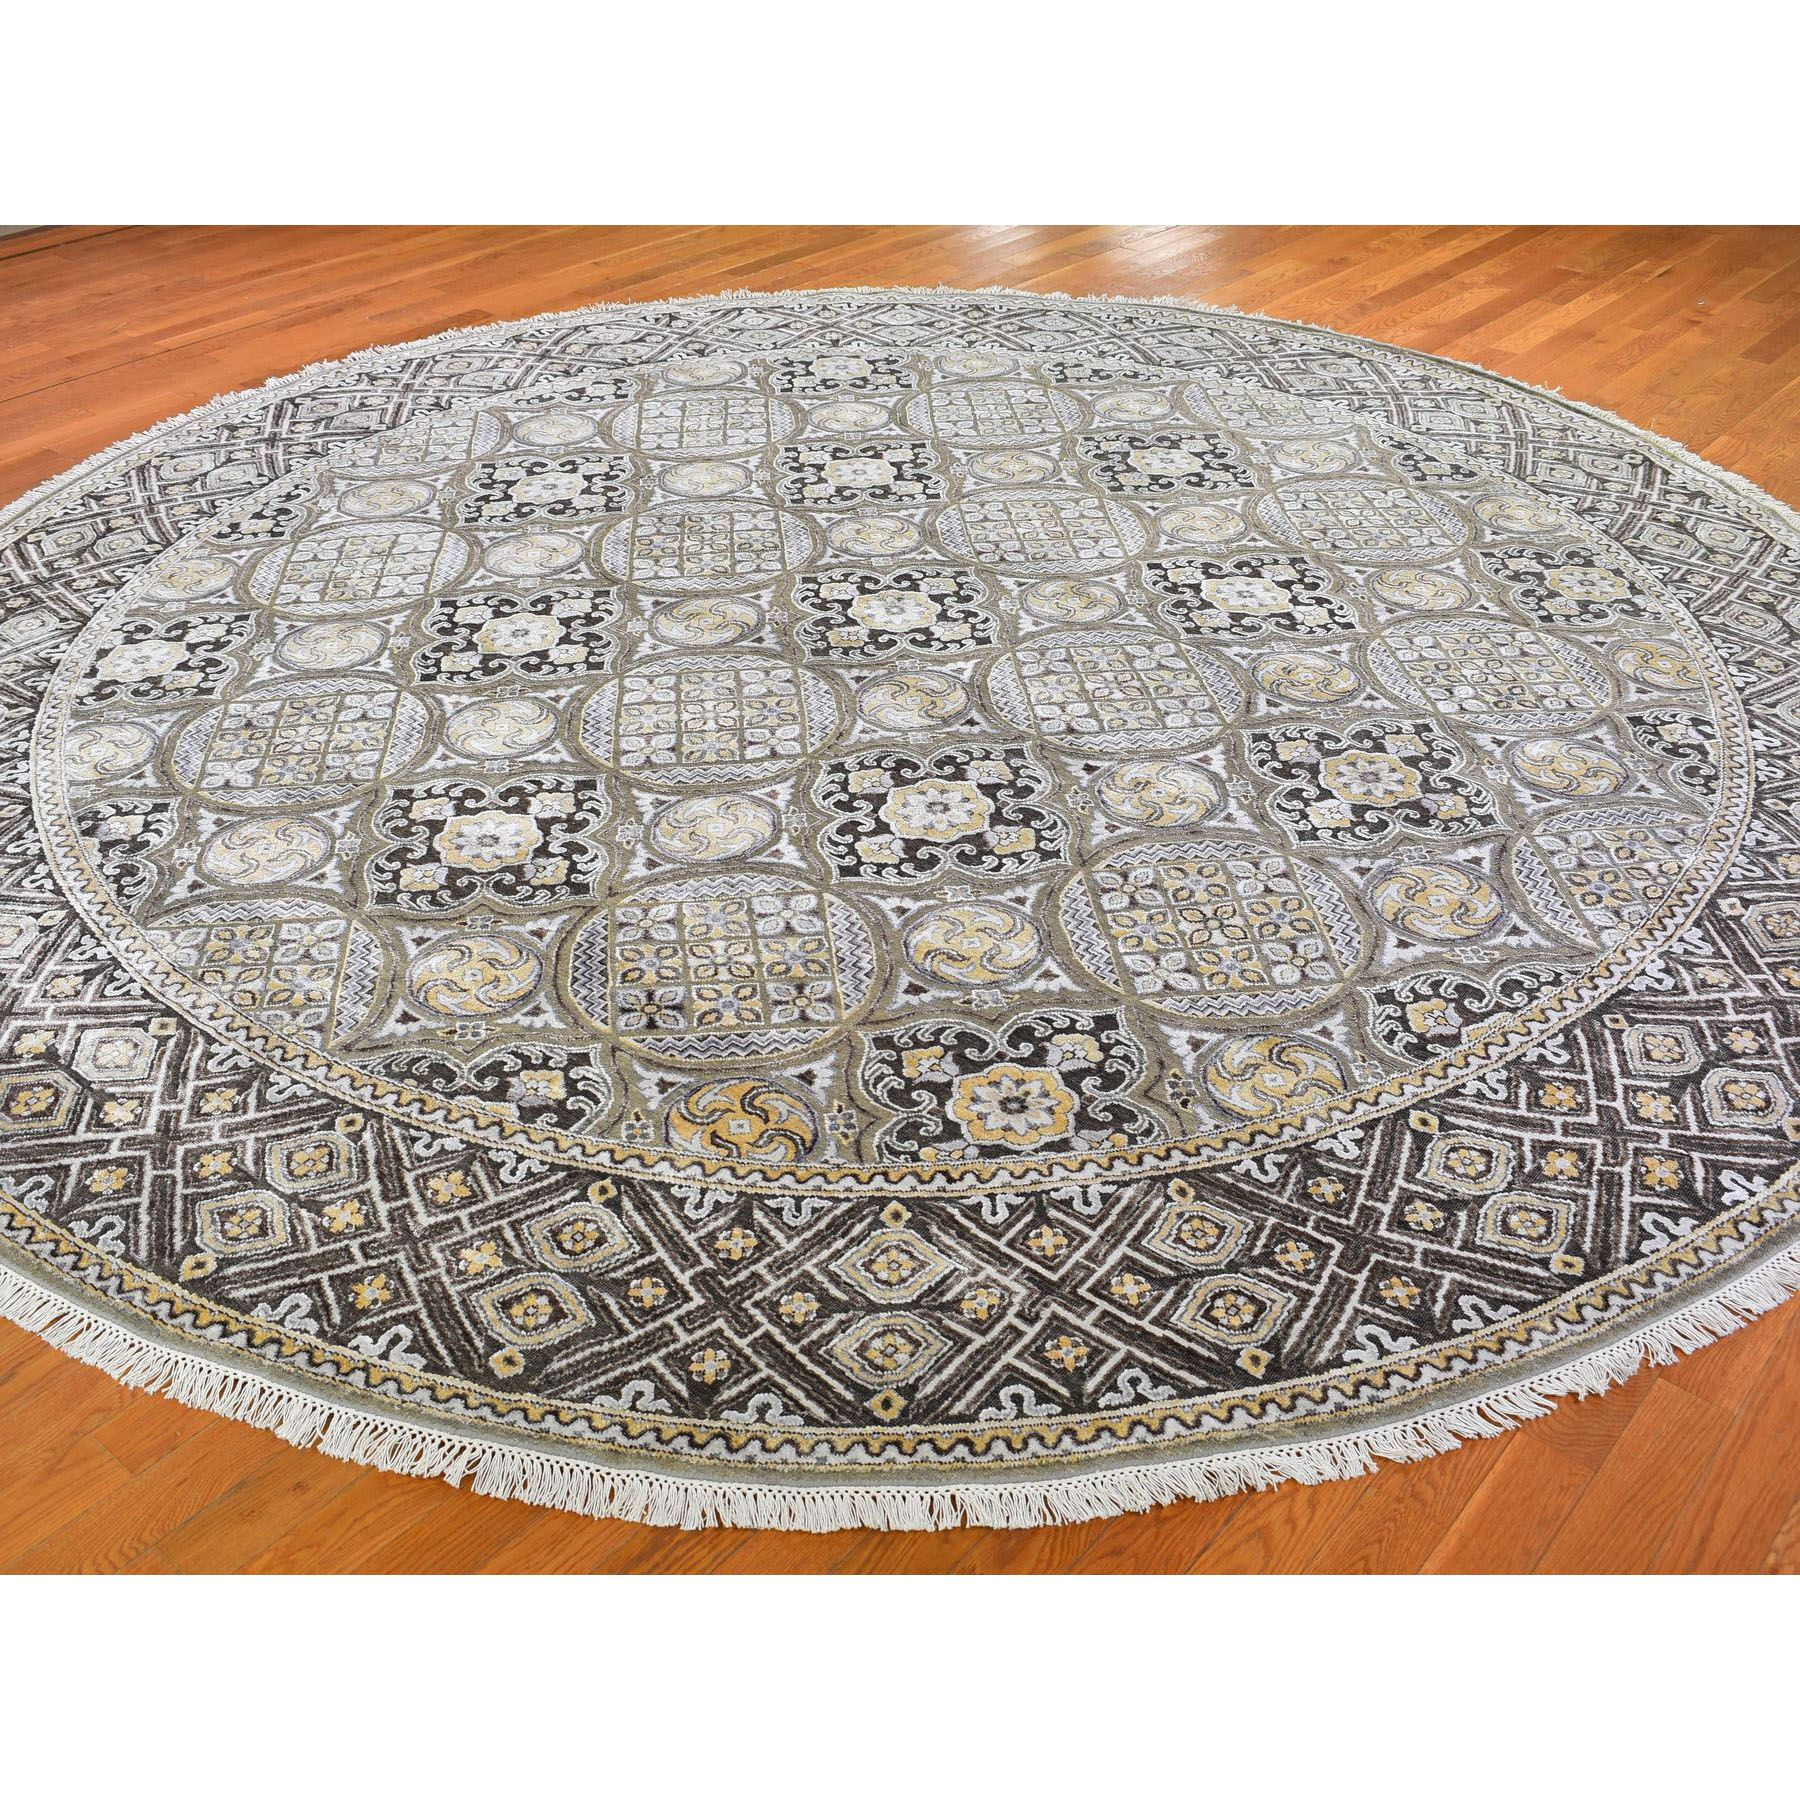 12-1 x12-5  Oversized Round Silk With Textured Wool Mughal Inspired Medallions Hand Knotted Oriental Rug